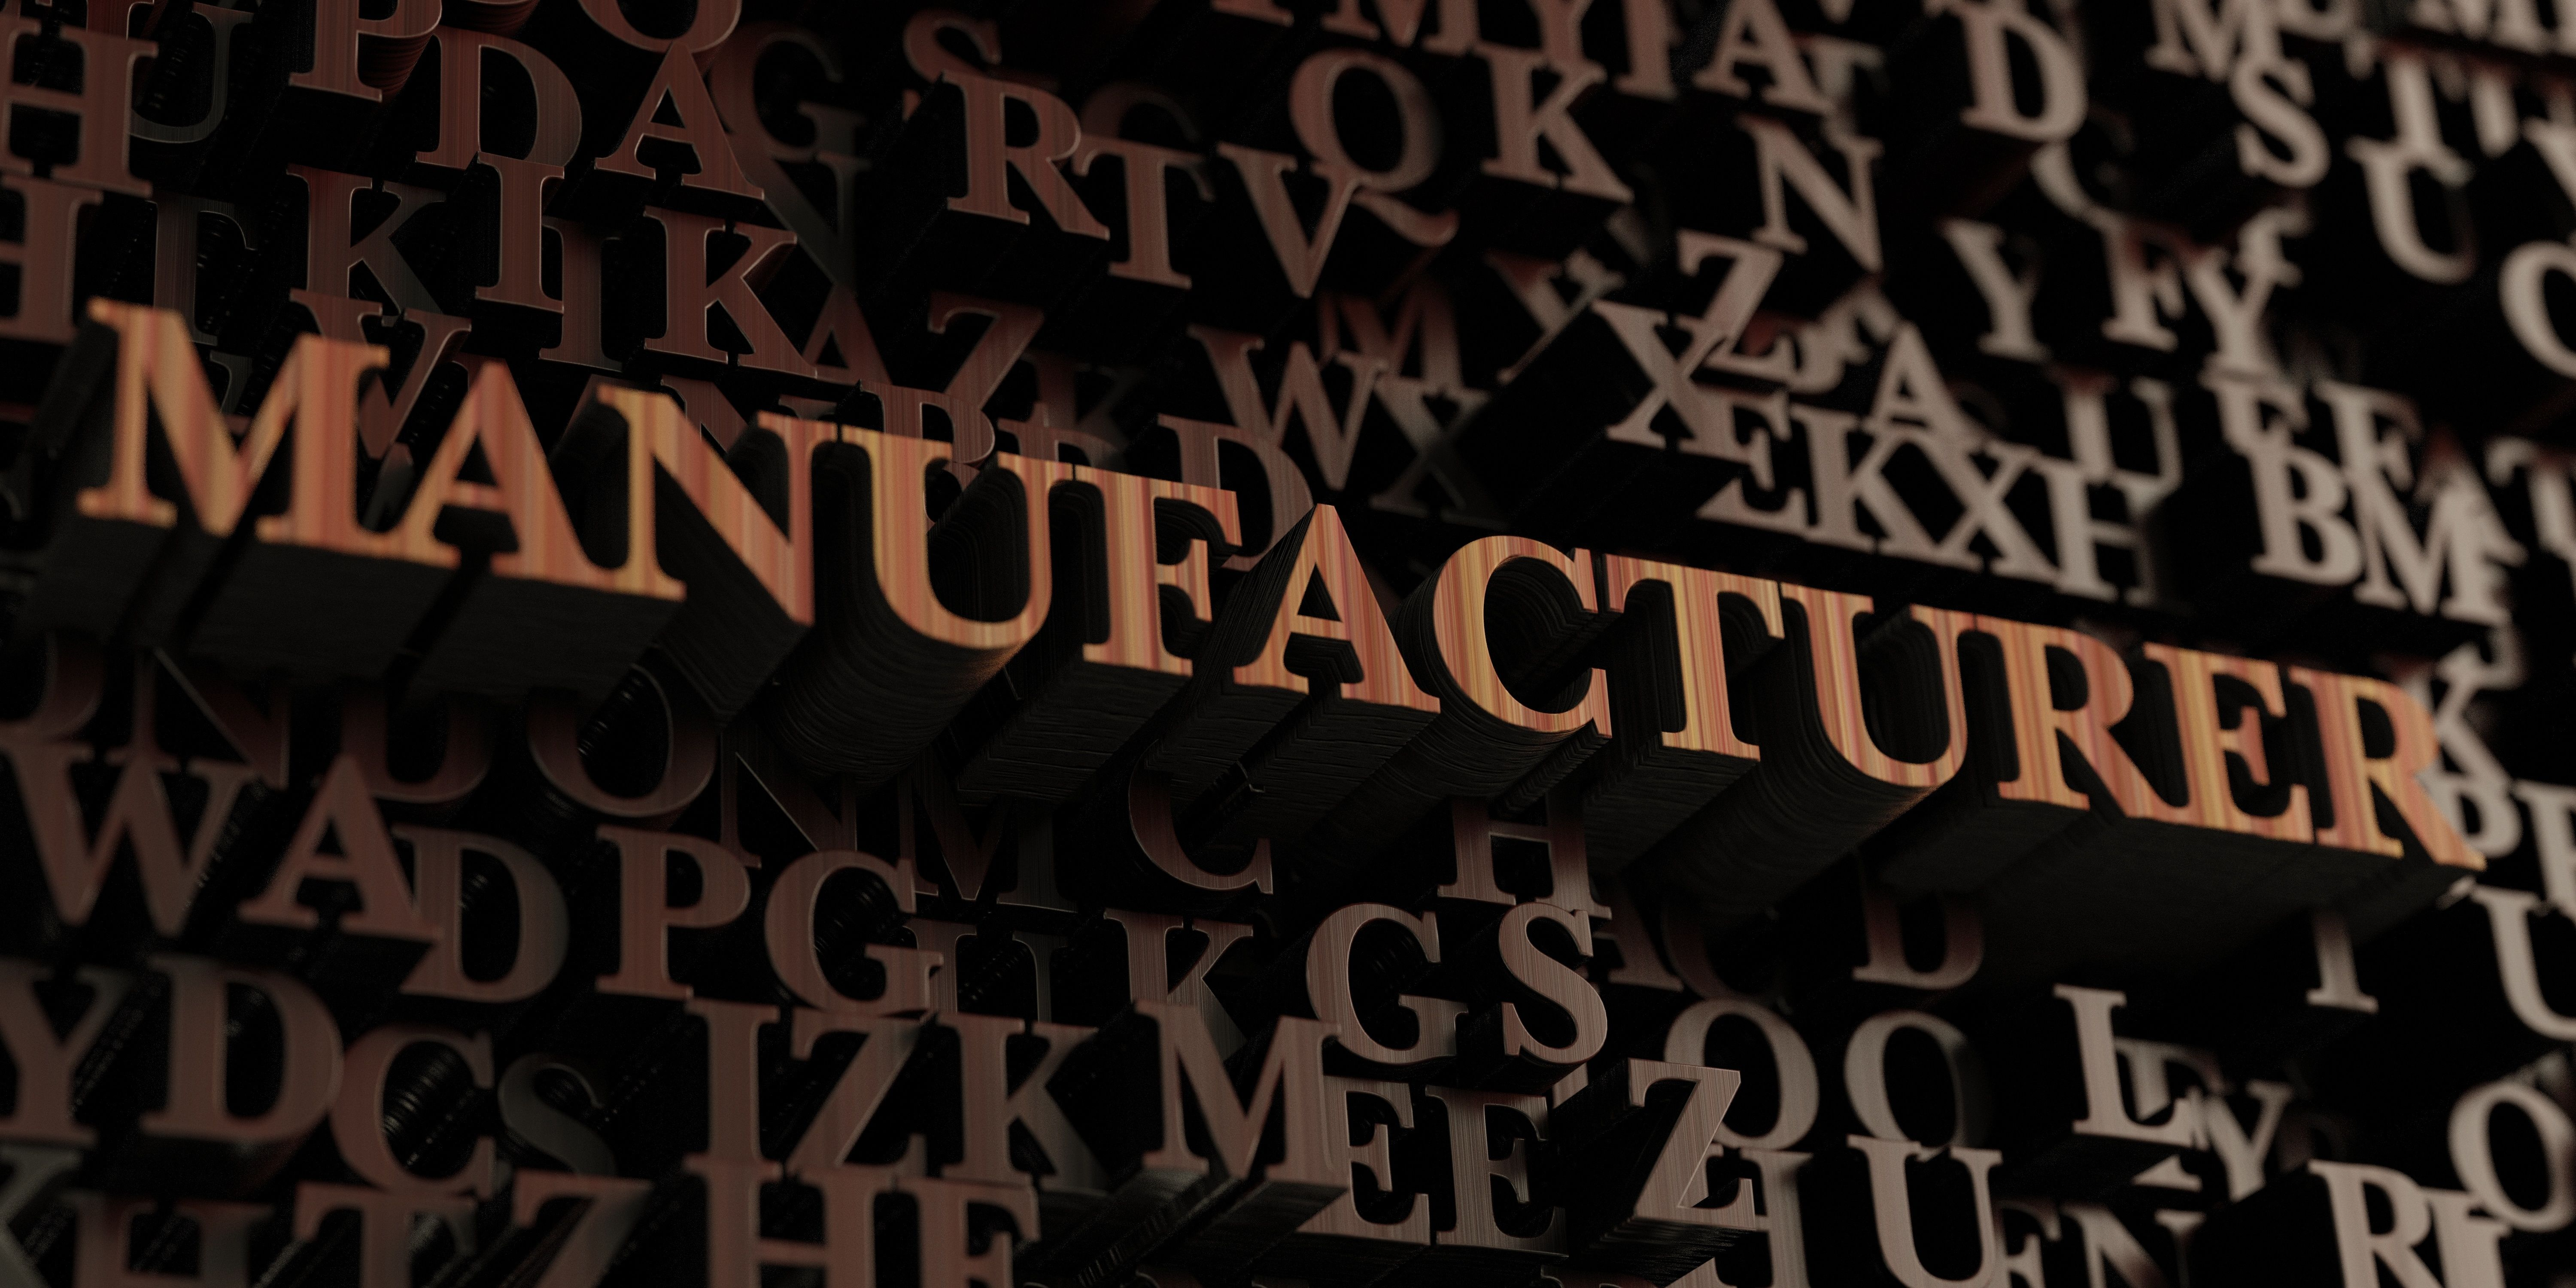 Manufacturers: How to Use Digital Media To Attract New Business